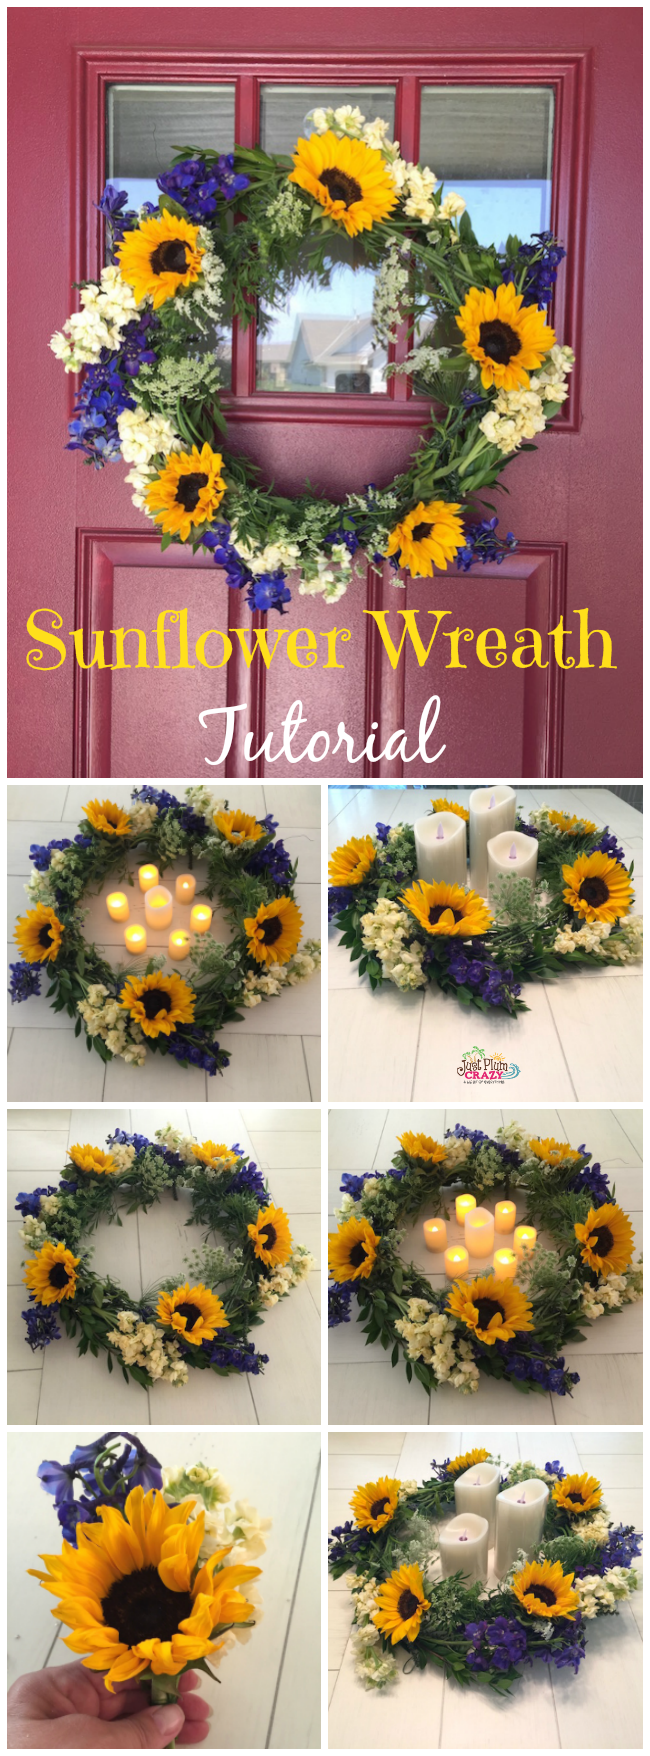 FiftyFlowers are wholesale flowers and have every kind of flower you are looking for for your event. I made a Sunflower Wreath and wedding corsage.